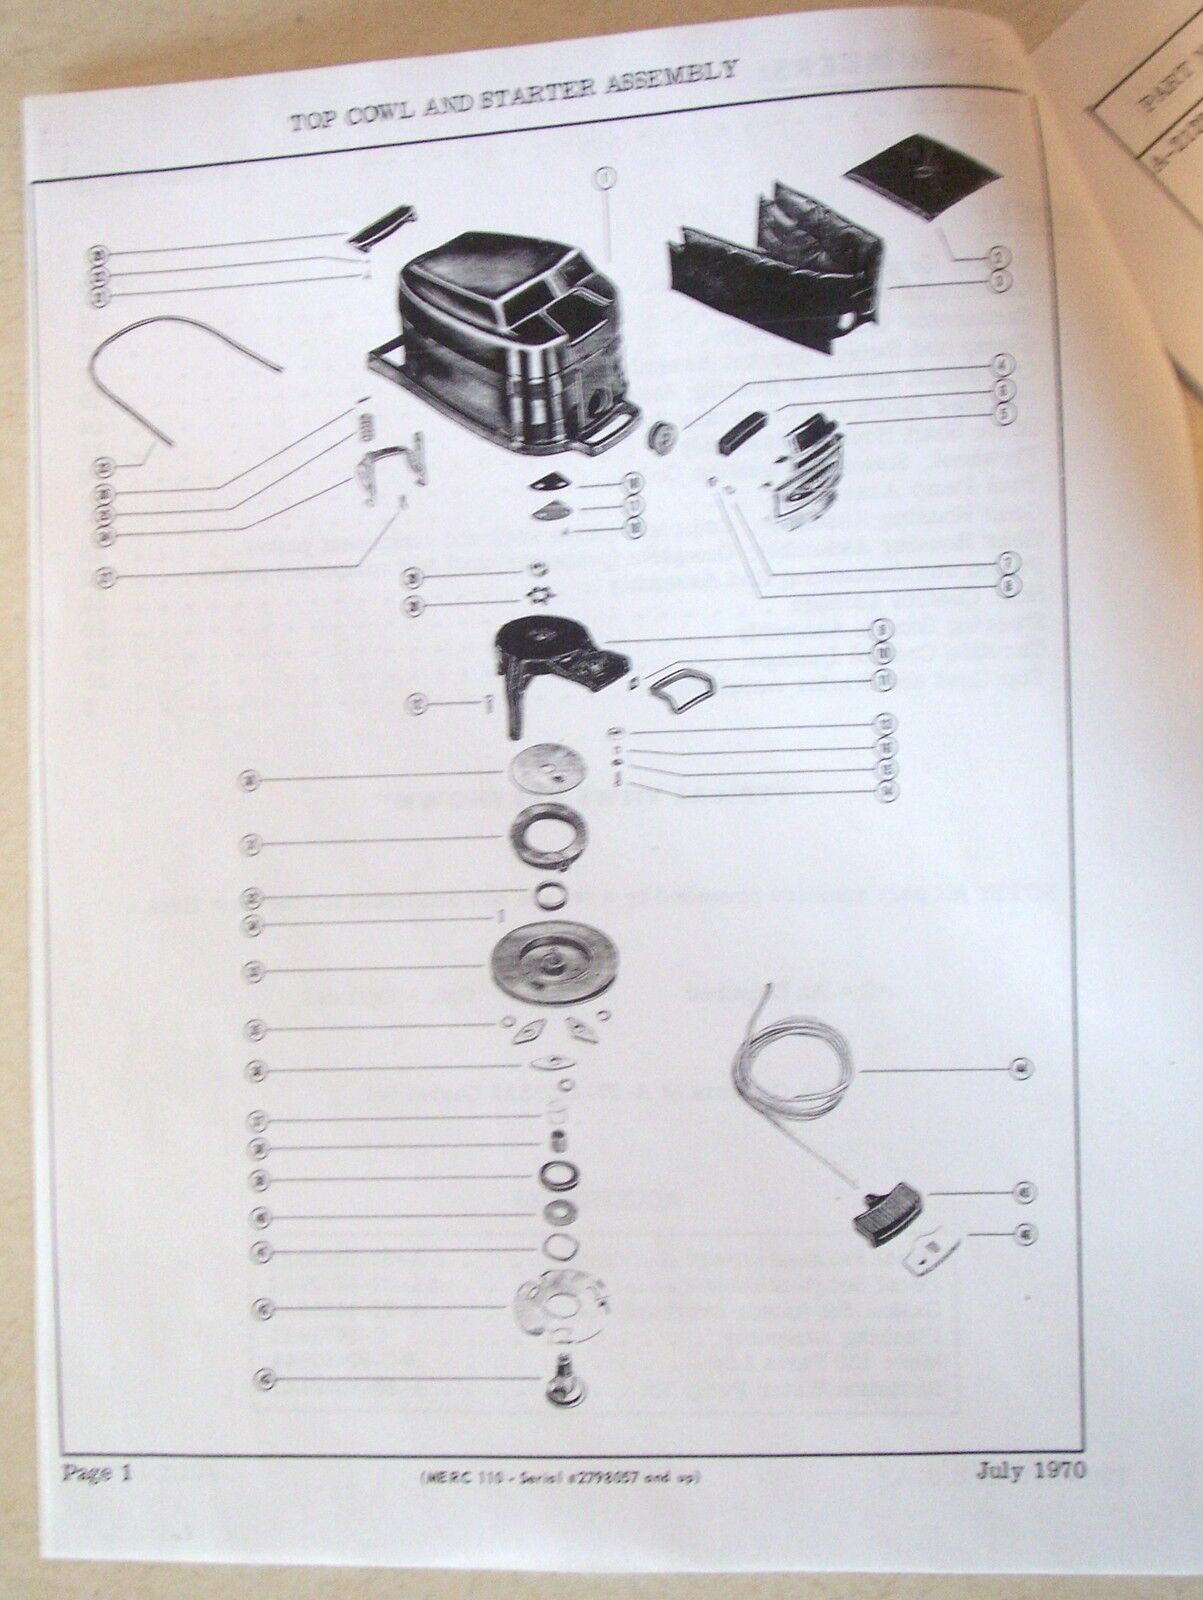 mercury 110 9 8 hp outboard motor parts list manual 70 s 80 s rh picclick com Mercury 110 Parts Mercury 110 9.8 Manual